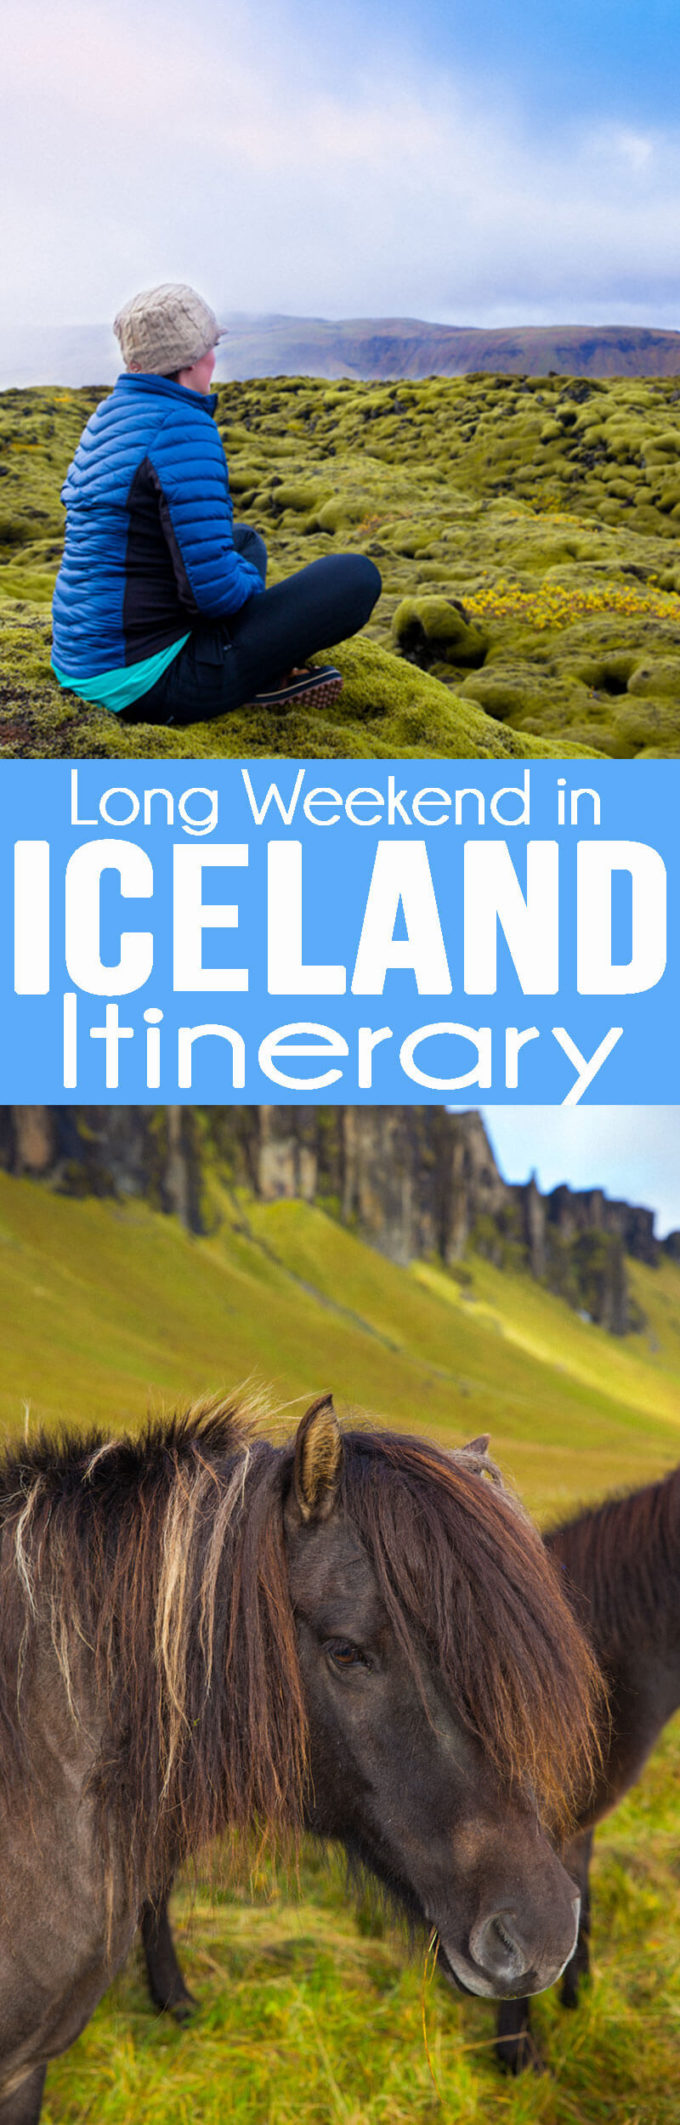 Long weekend in Iceland itinerary, 3 days golden circle and more